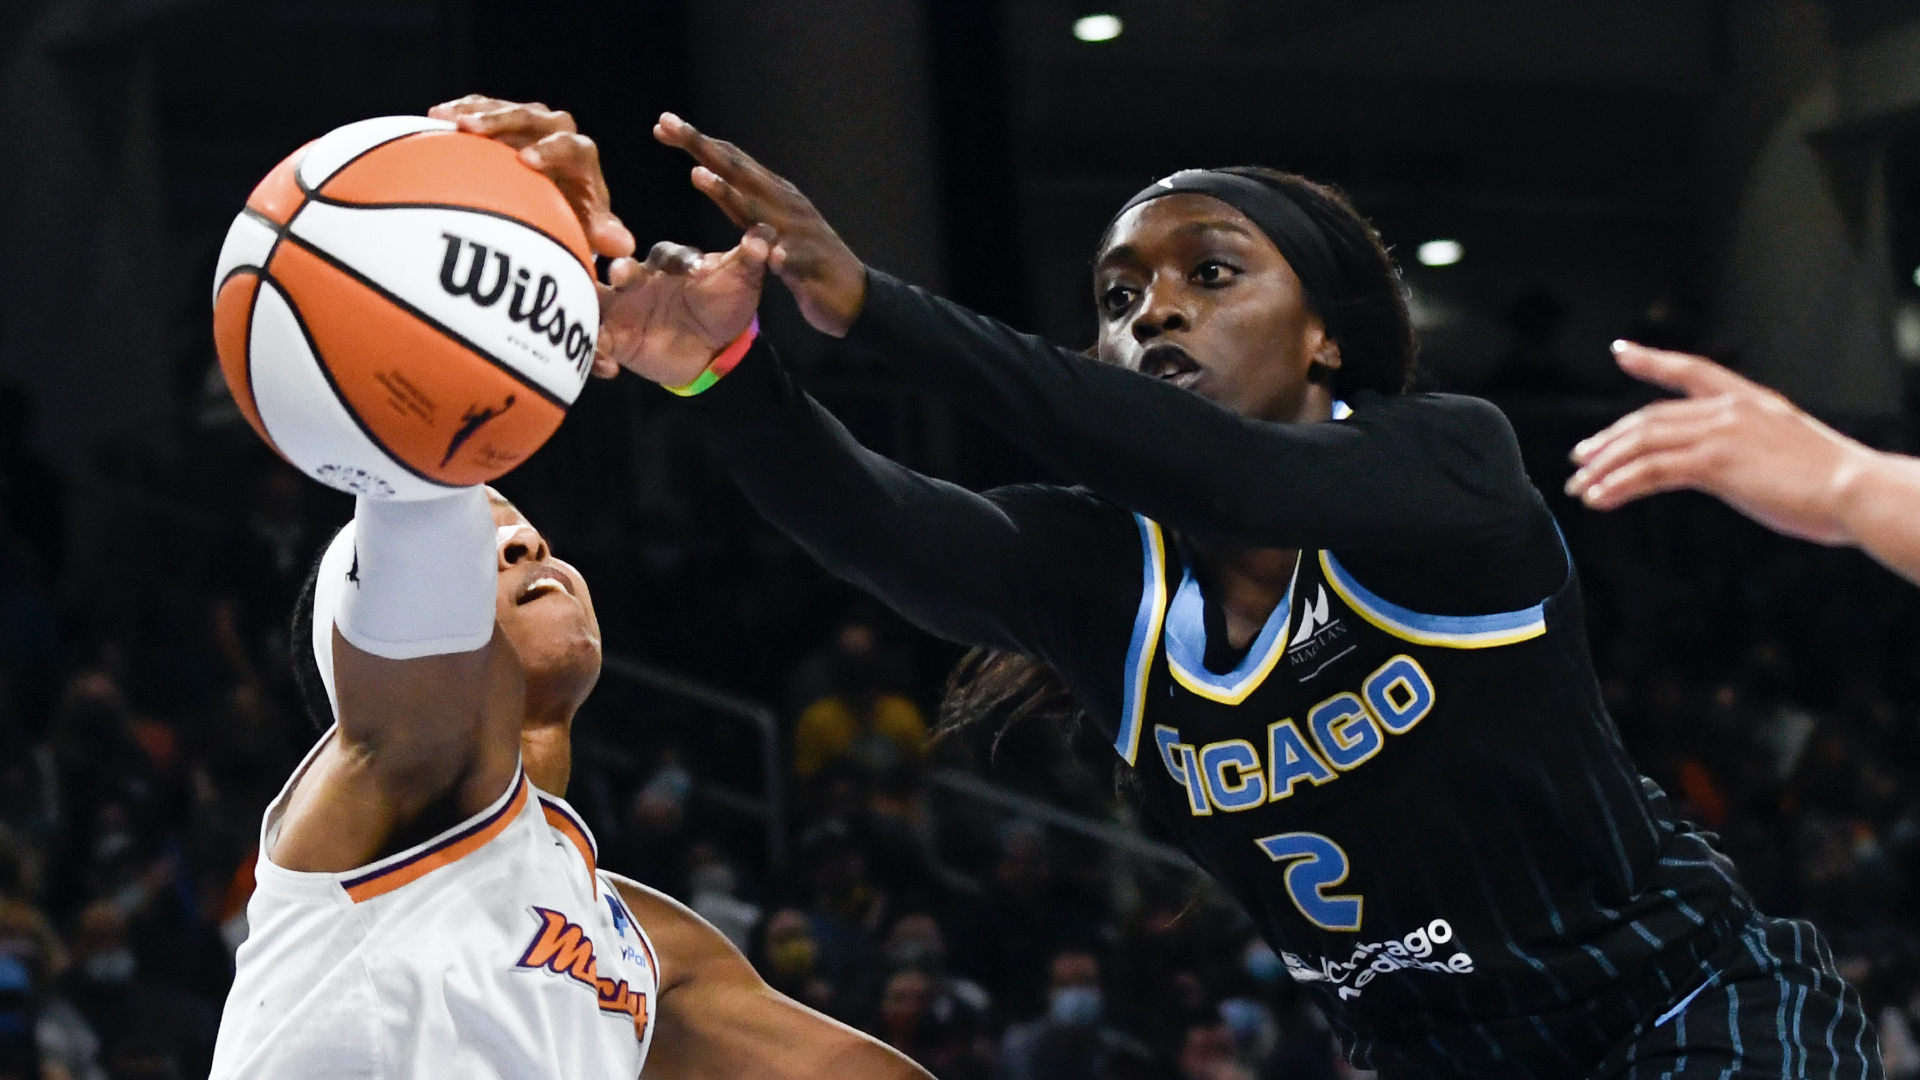 Sky rout Mercury in Game 3, move 1 win away from title